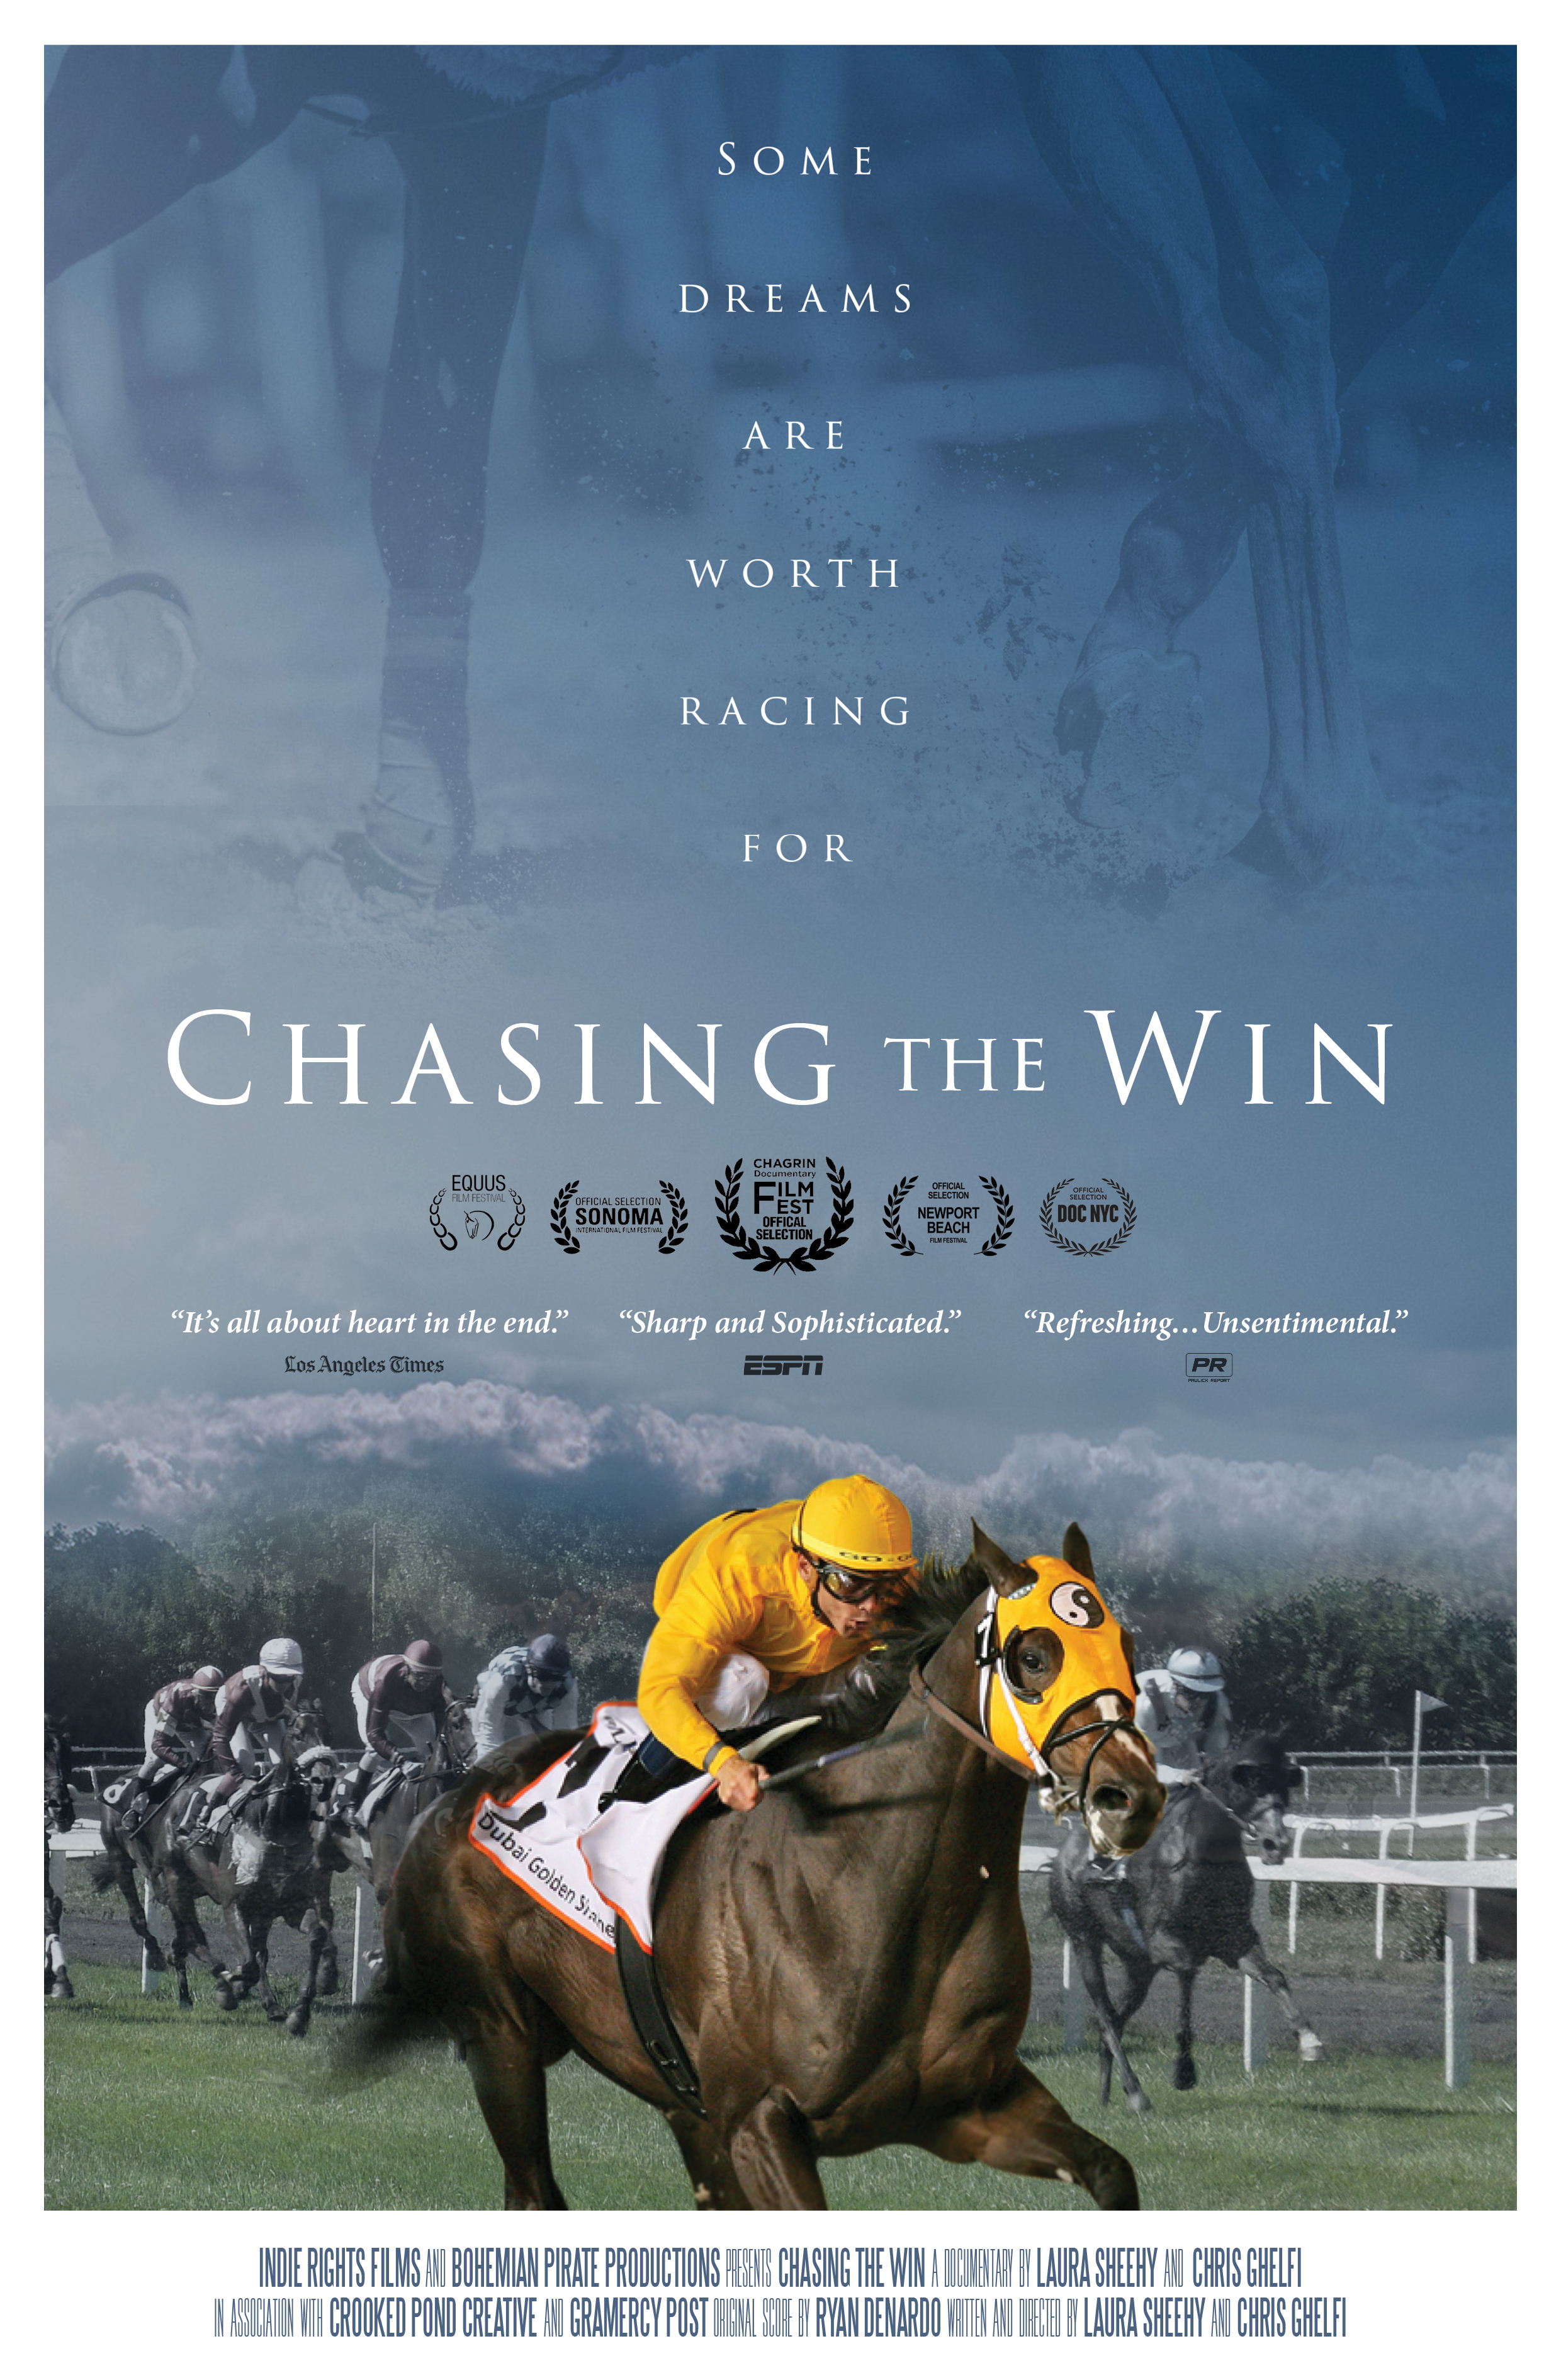 Chasing The Win Poster - Approved Poster - CREEPYDUCKDESIGN.jpg